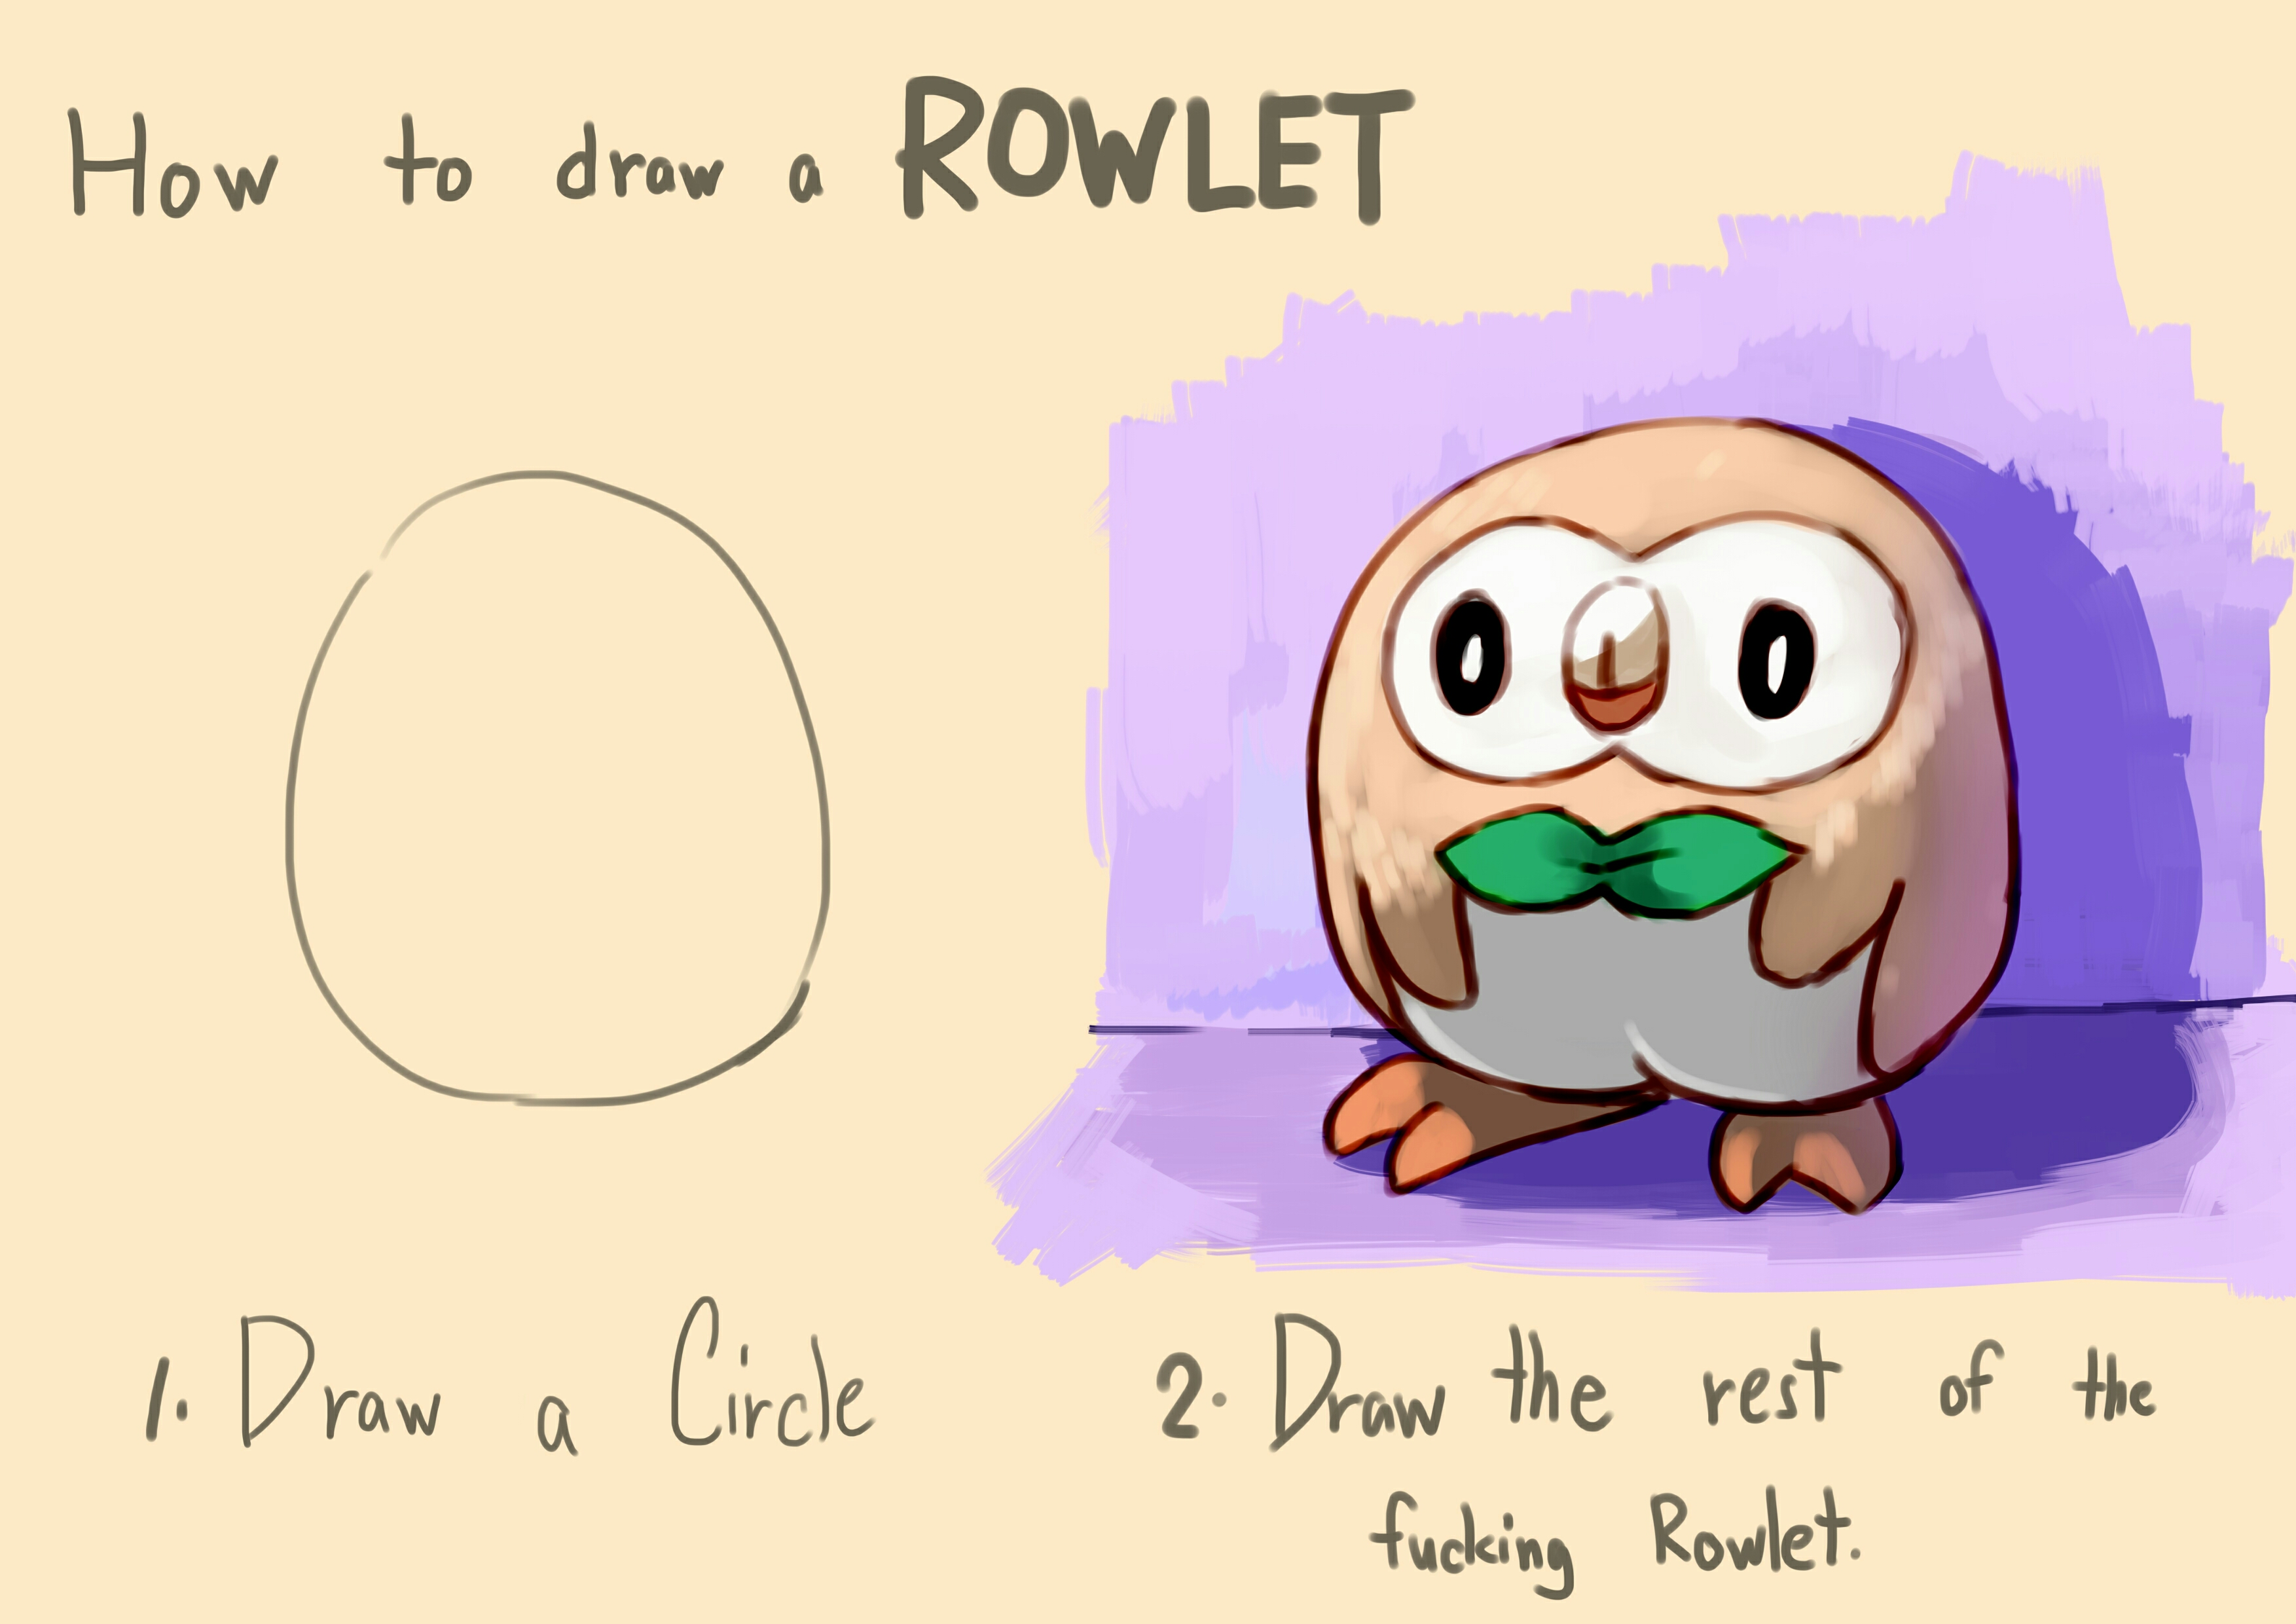 945 how to draw a rowlet rowlet's roundness know your meme